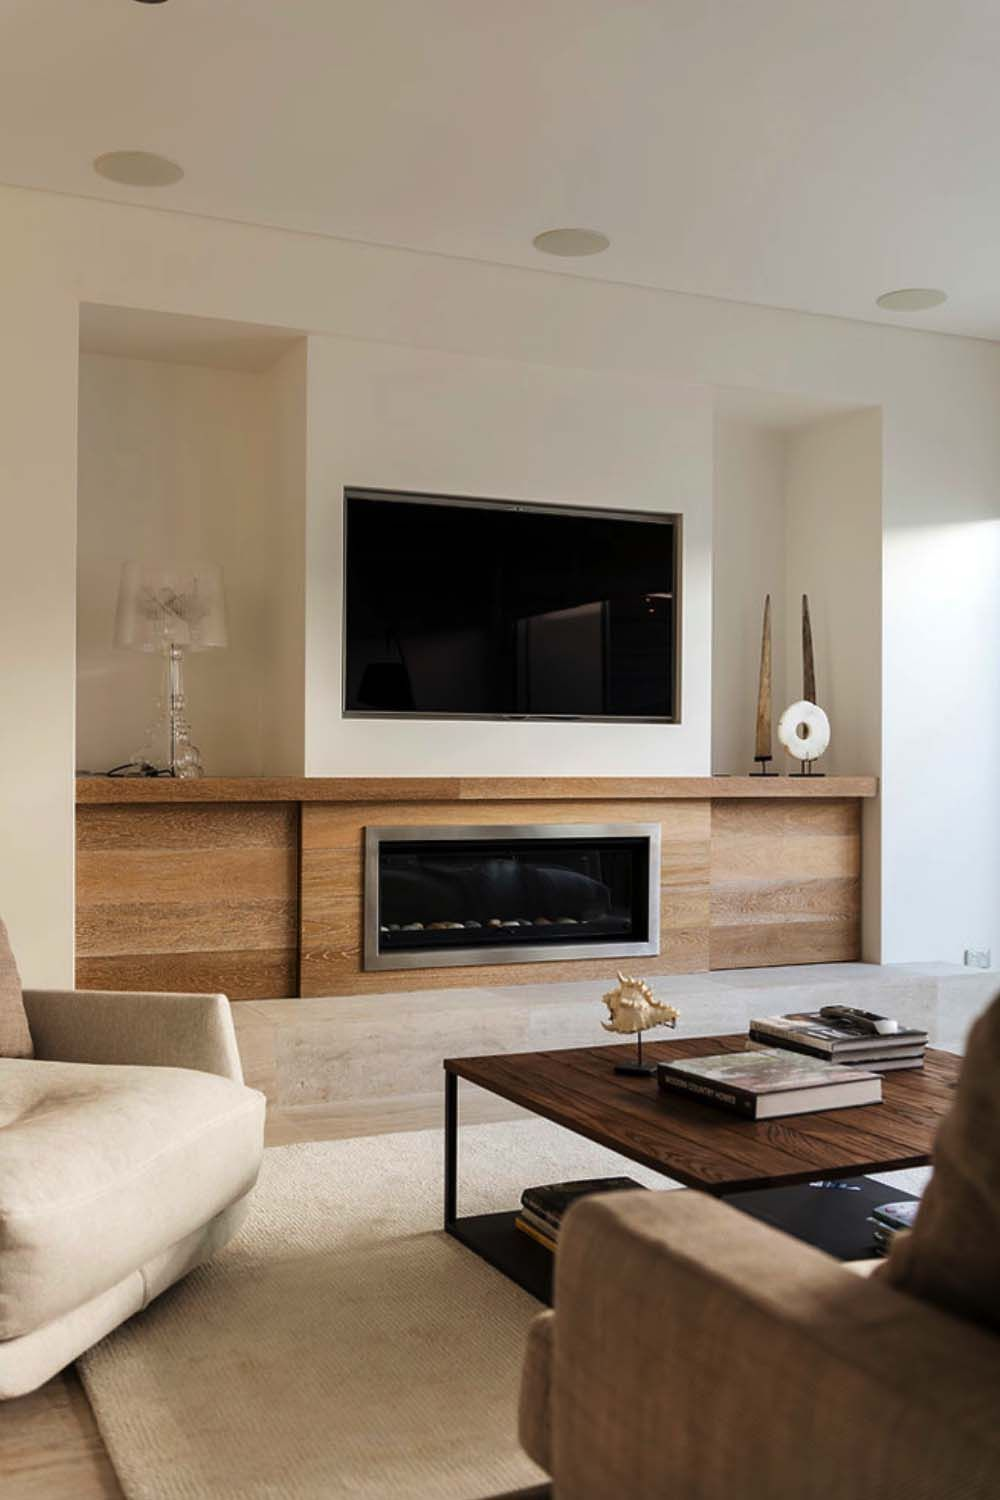 Renovated Australian Home Celebrates A Relaxed Beachside Lifestyle Contemporary Fireplace Designs Contemporary Fireplace Living Room With Fireplace #pictures #of #living #room #fireplaces